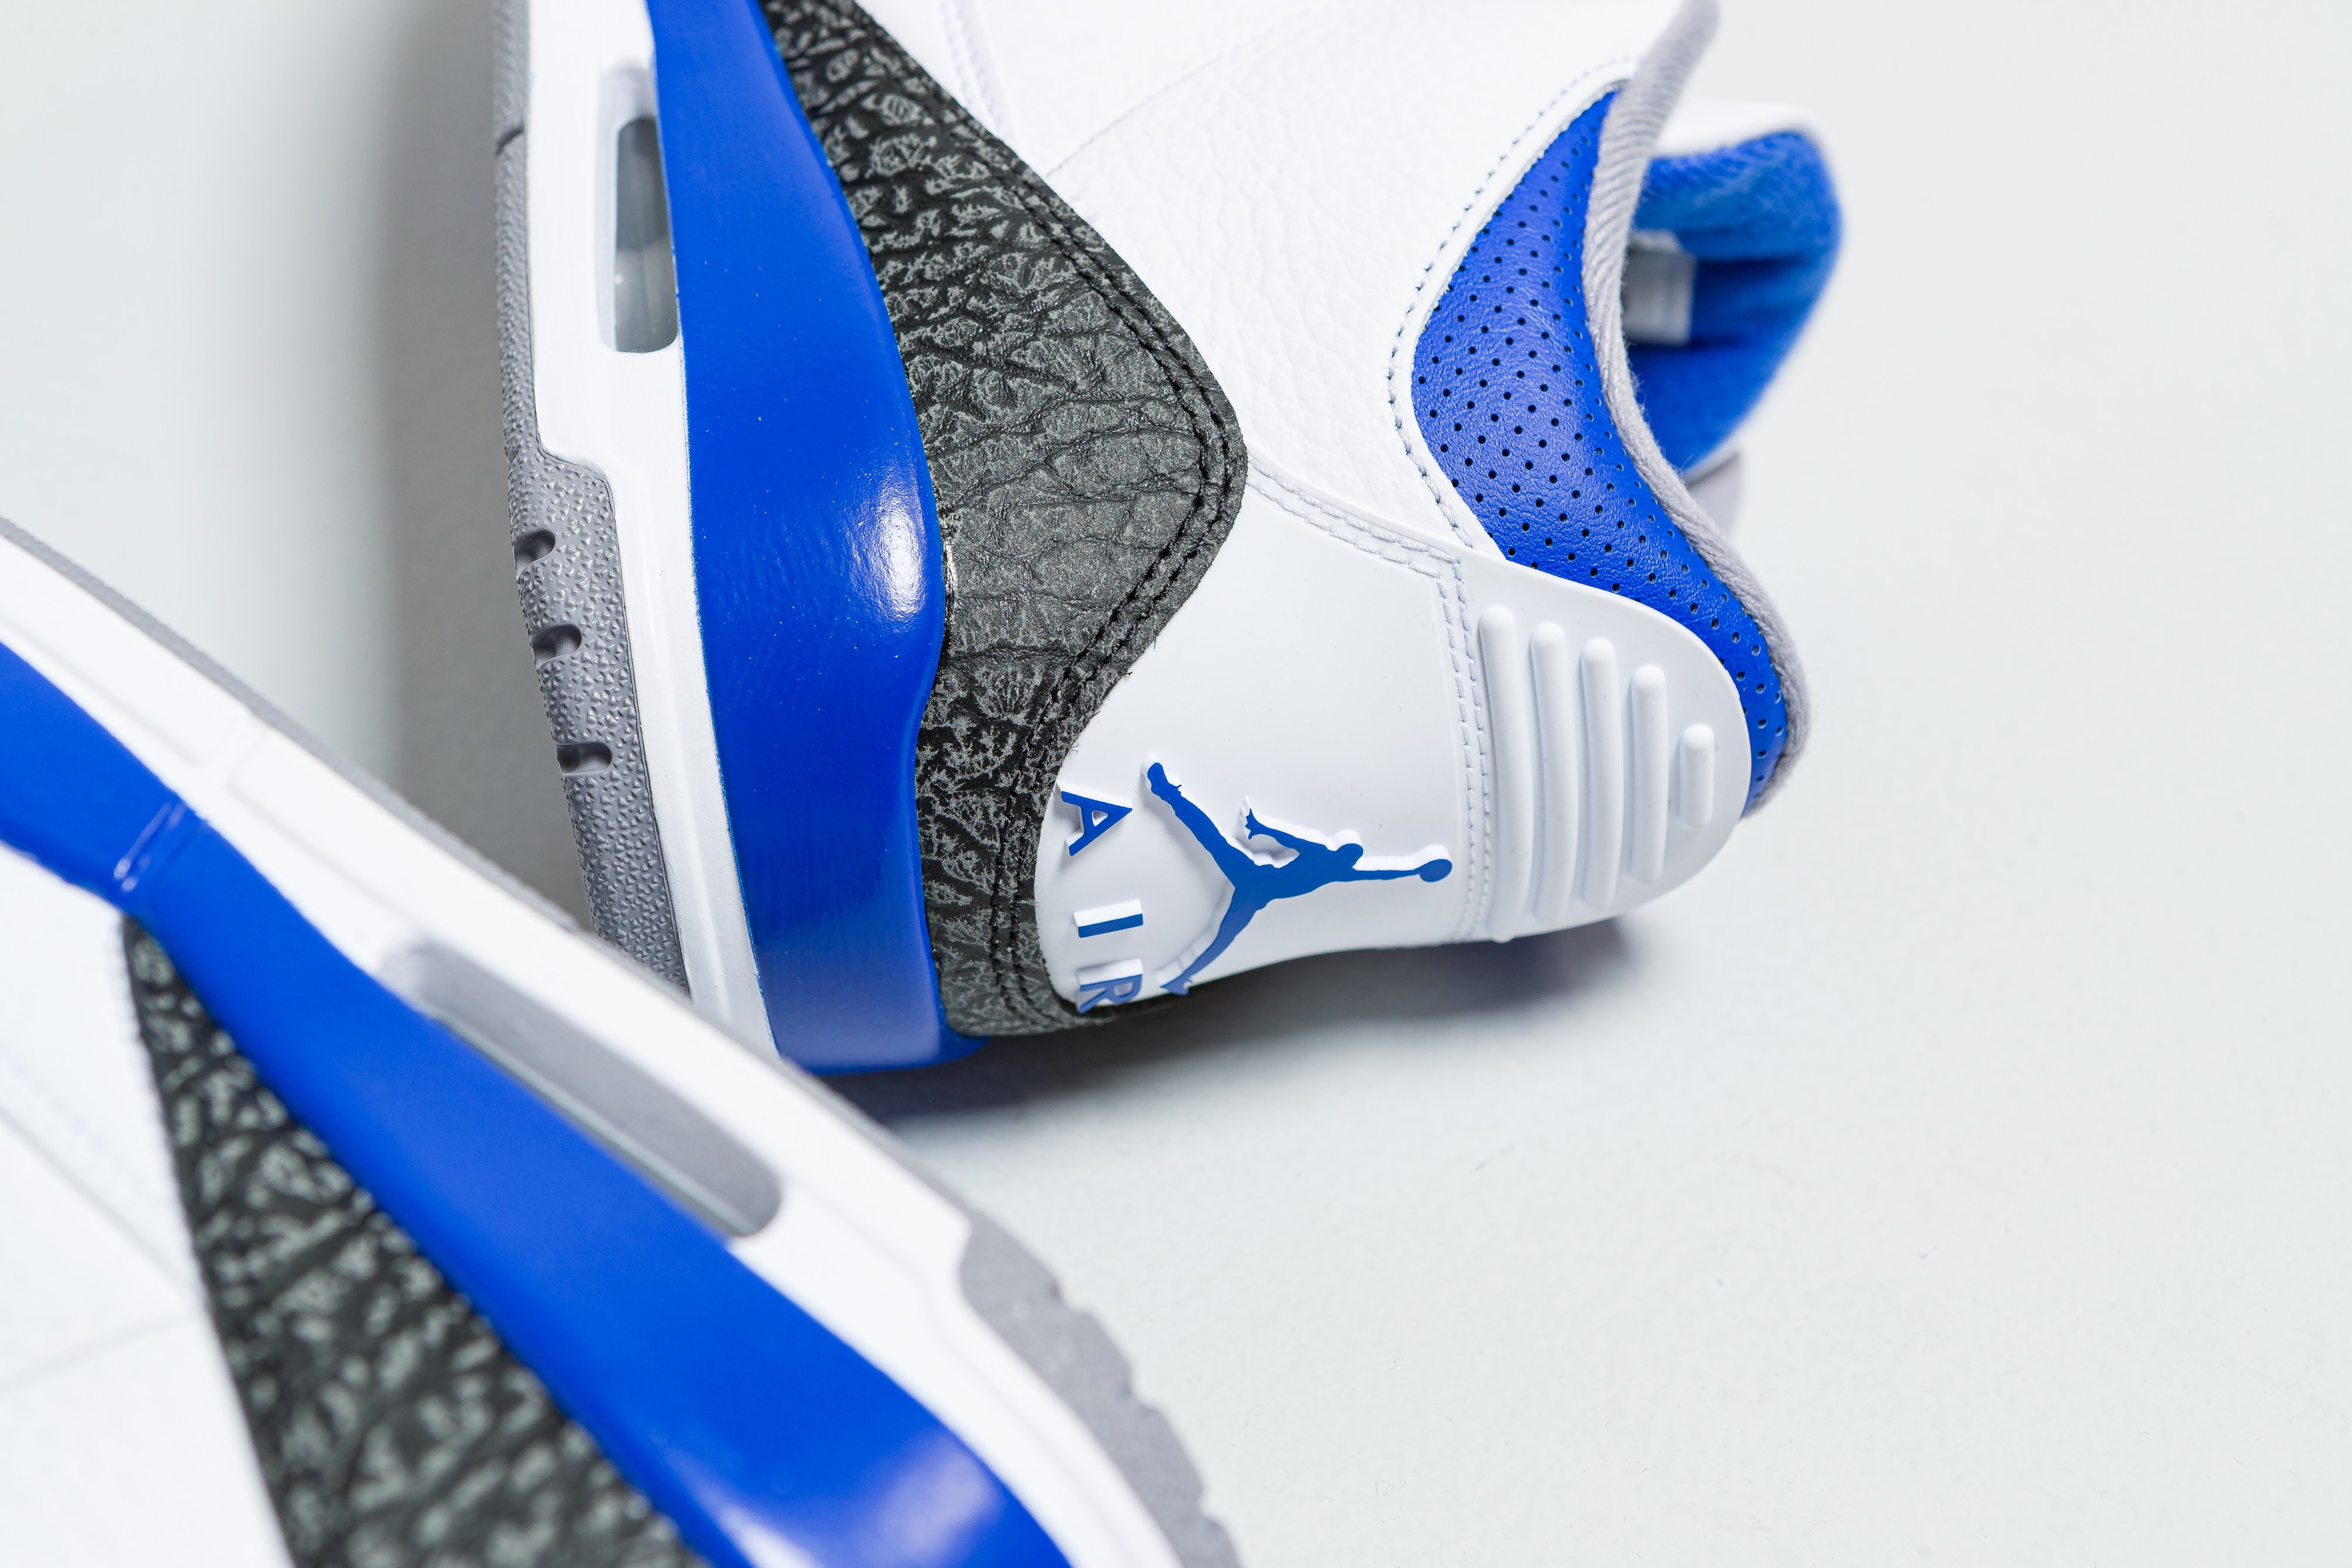 Up There Launches - Nike Air Jordan 3 Retro 'Racer Blue'